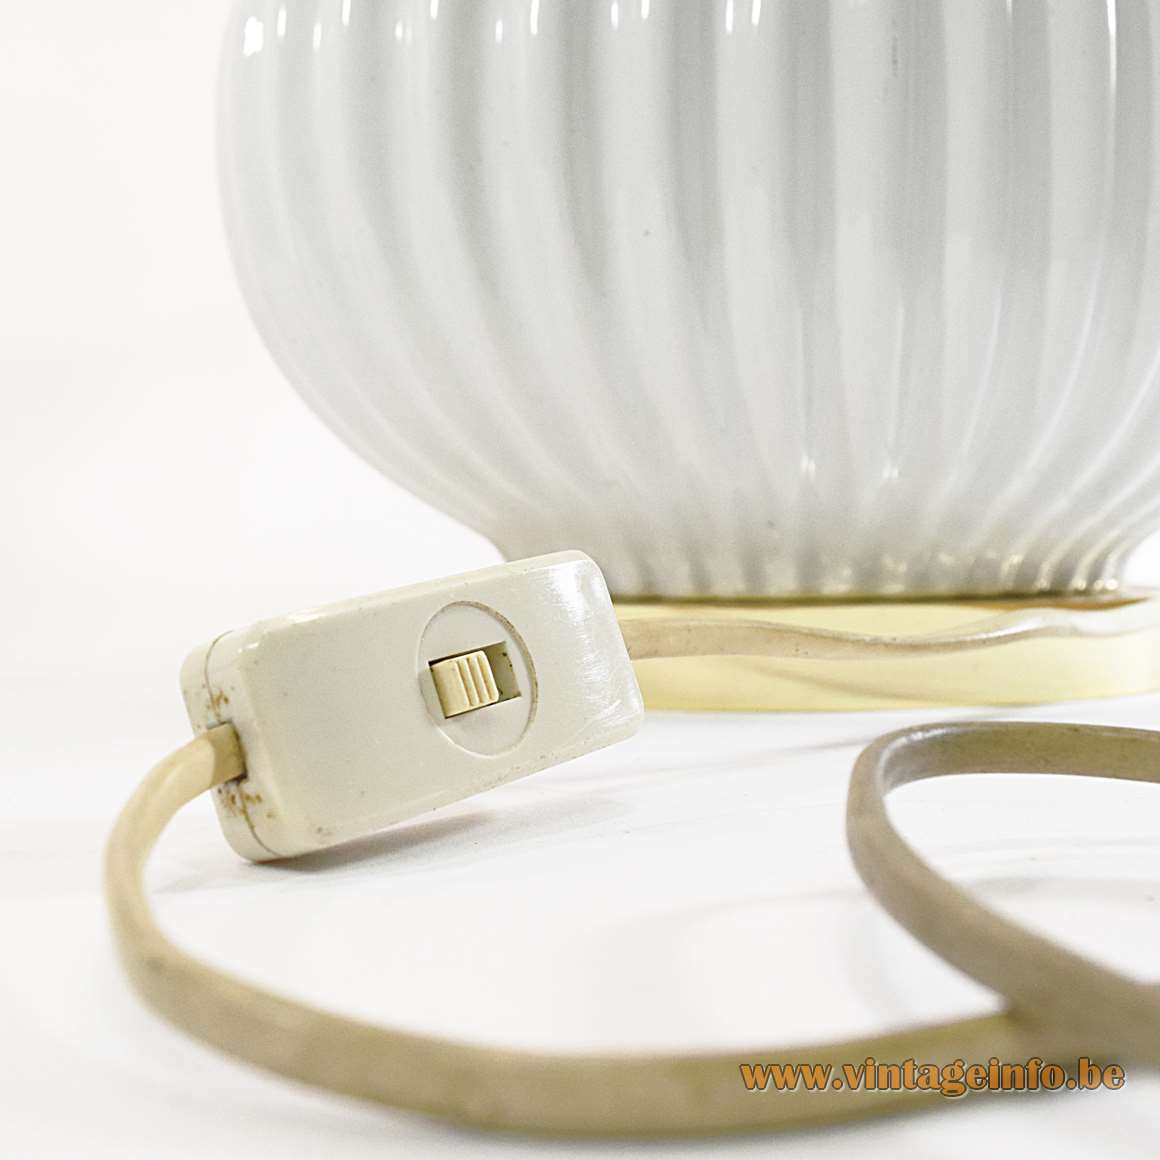 Oval Ceramics & Brass Table Lamps pumpkin design white glazed 1970s 1980s Tomasso Barbi style